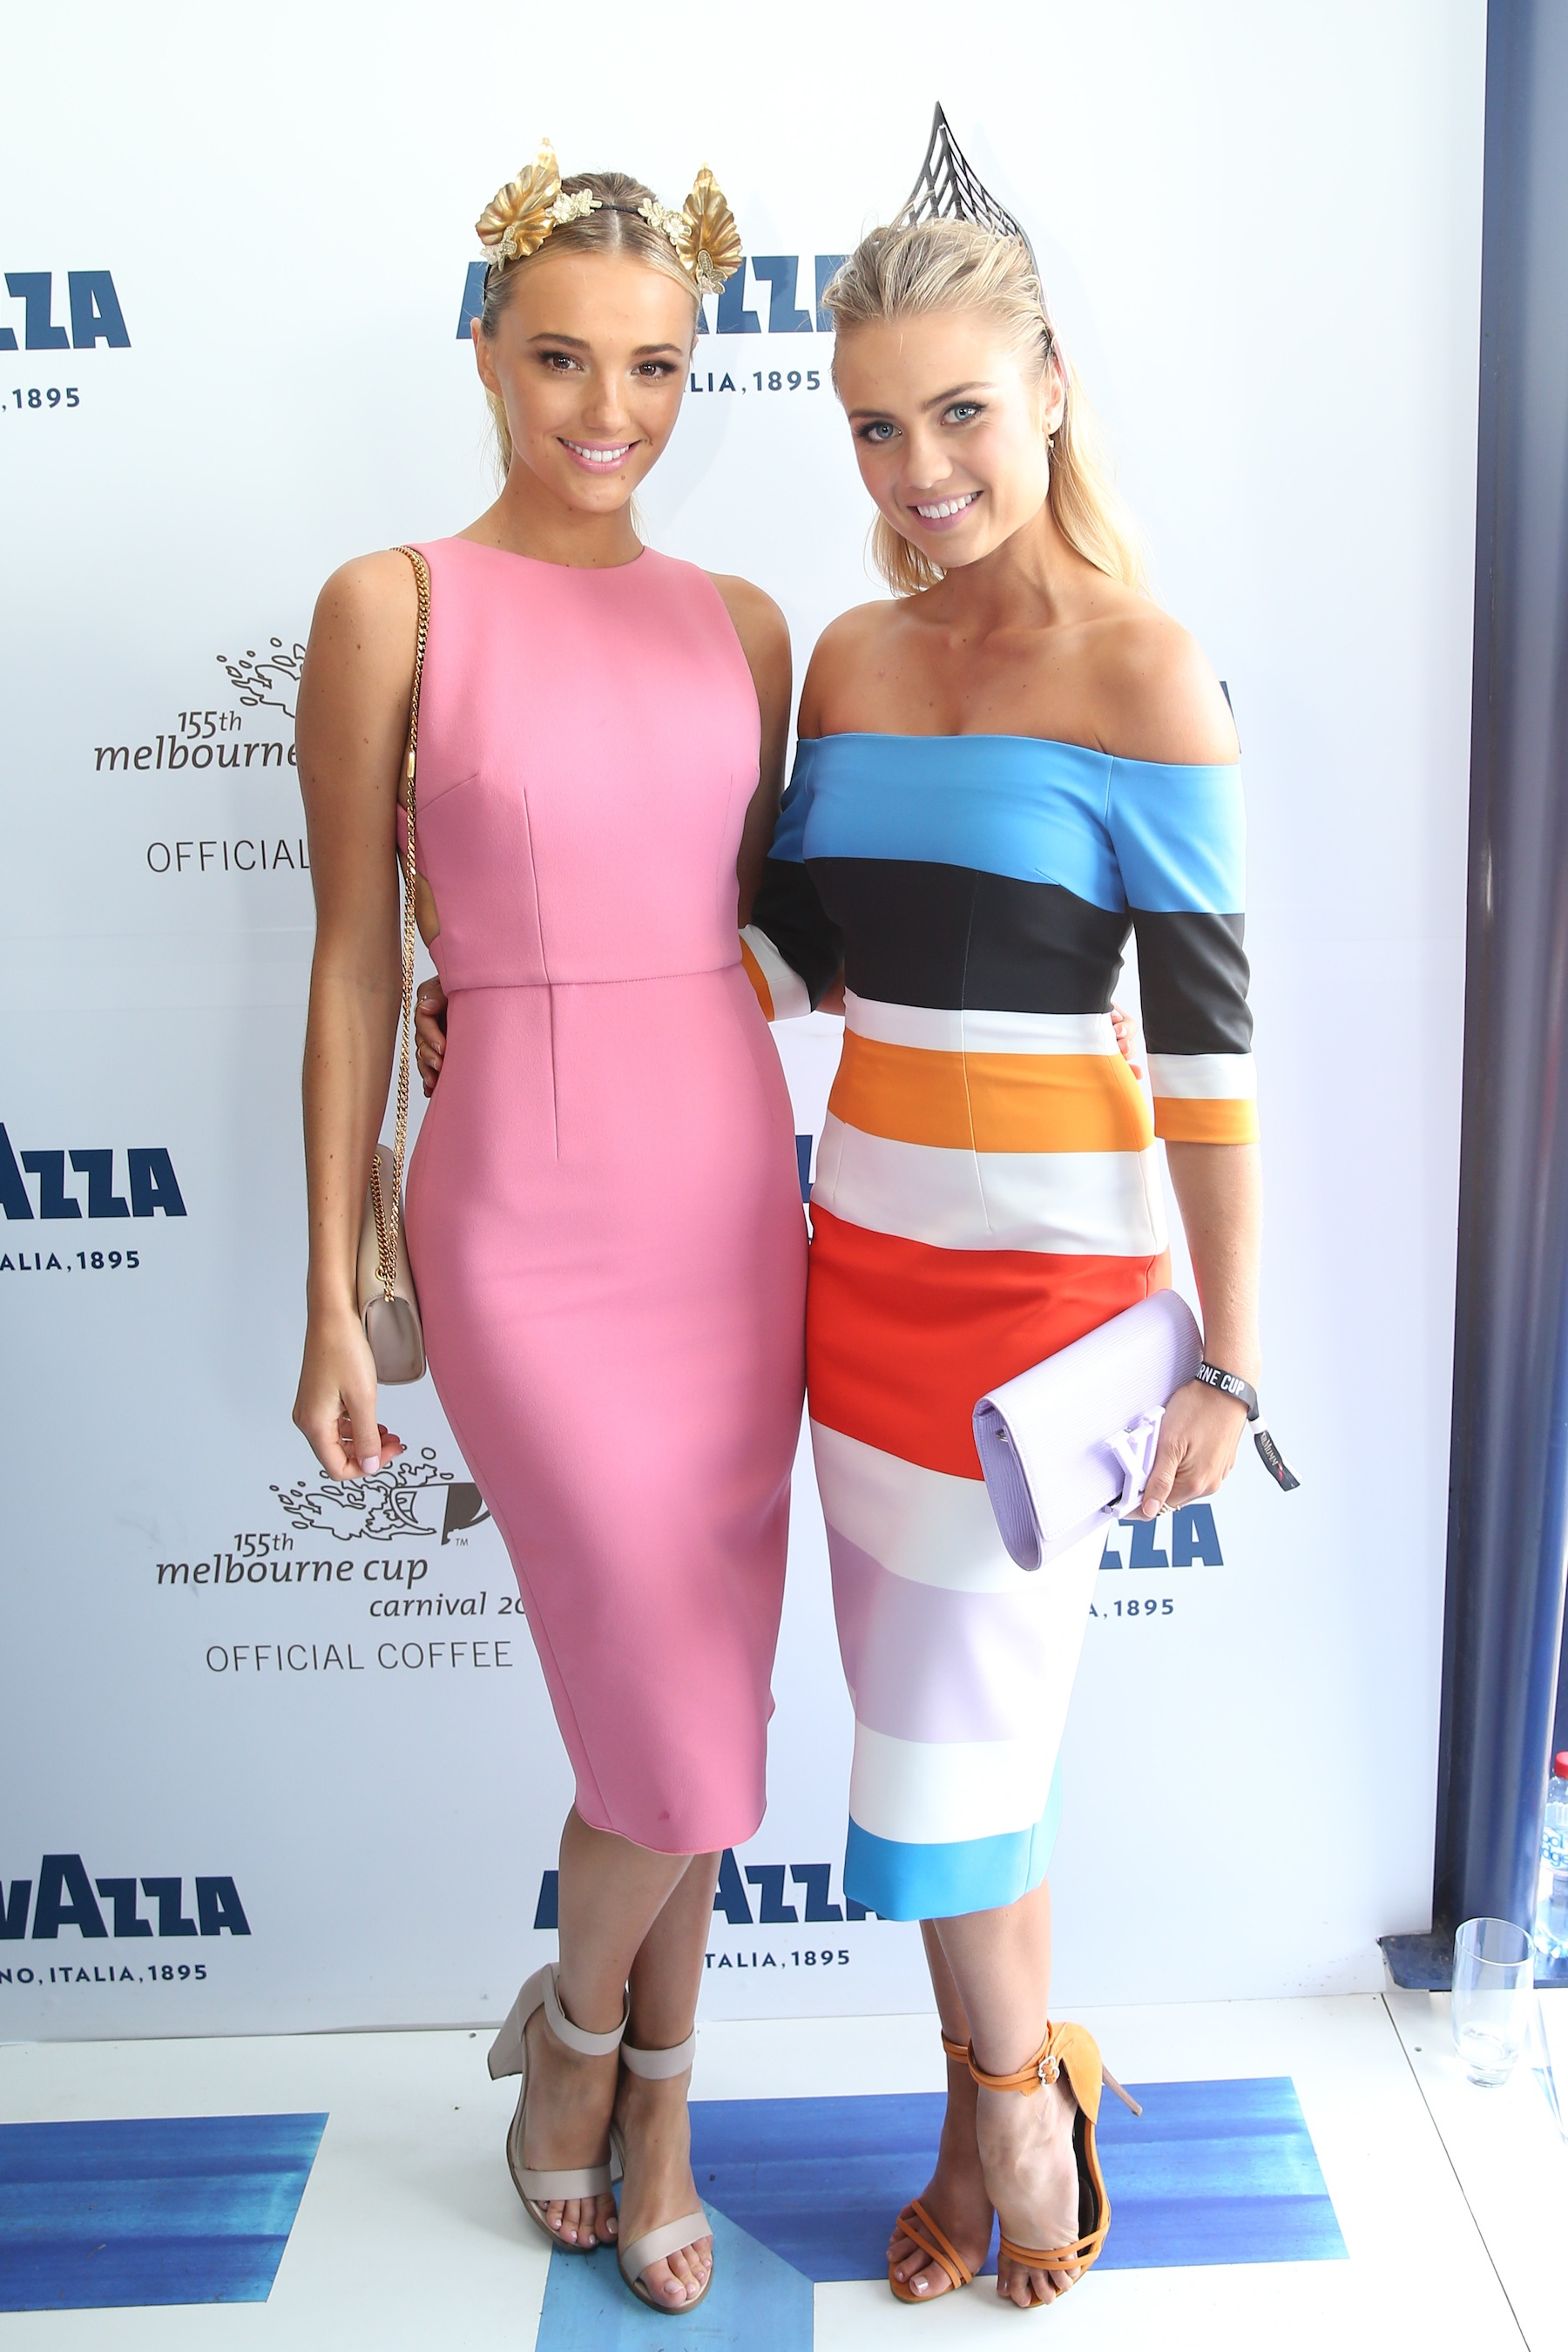 lavazza-mcc-2015-brooke-hogan-elyse-knowles.jpg